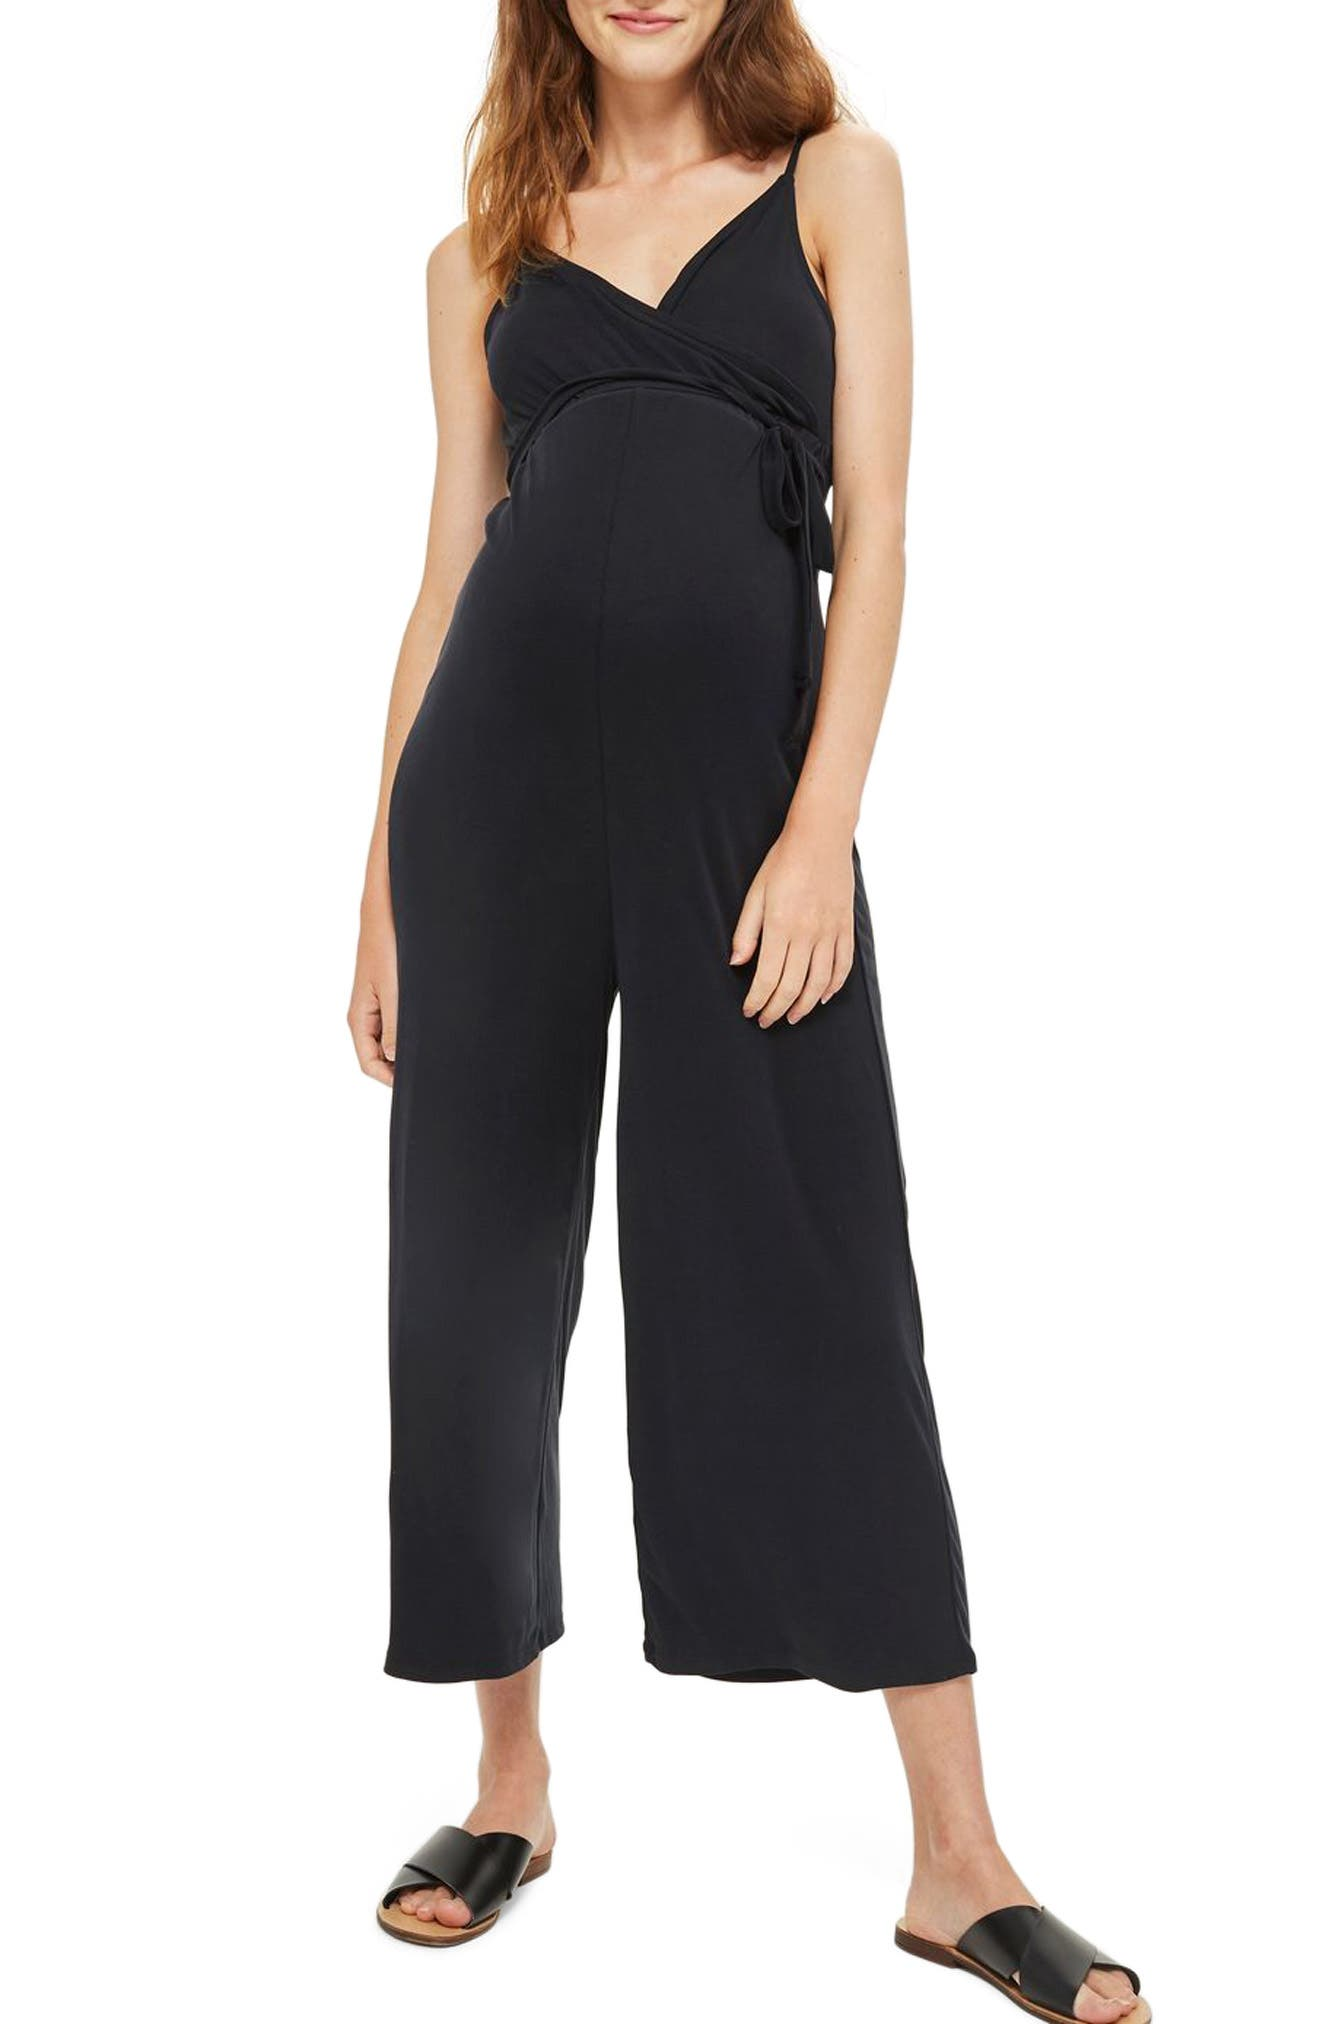 Topshop Ribbed Knit Maternity Jumpsuit